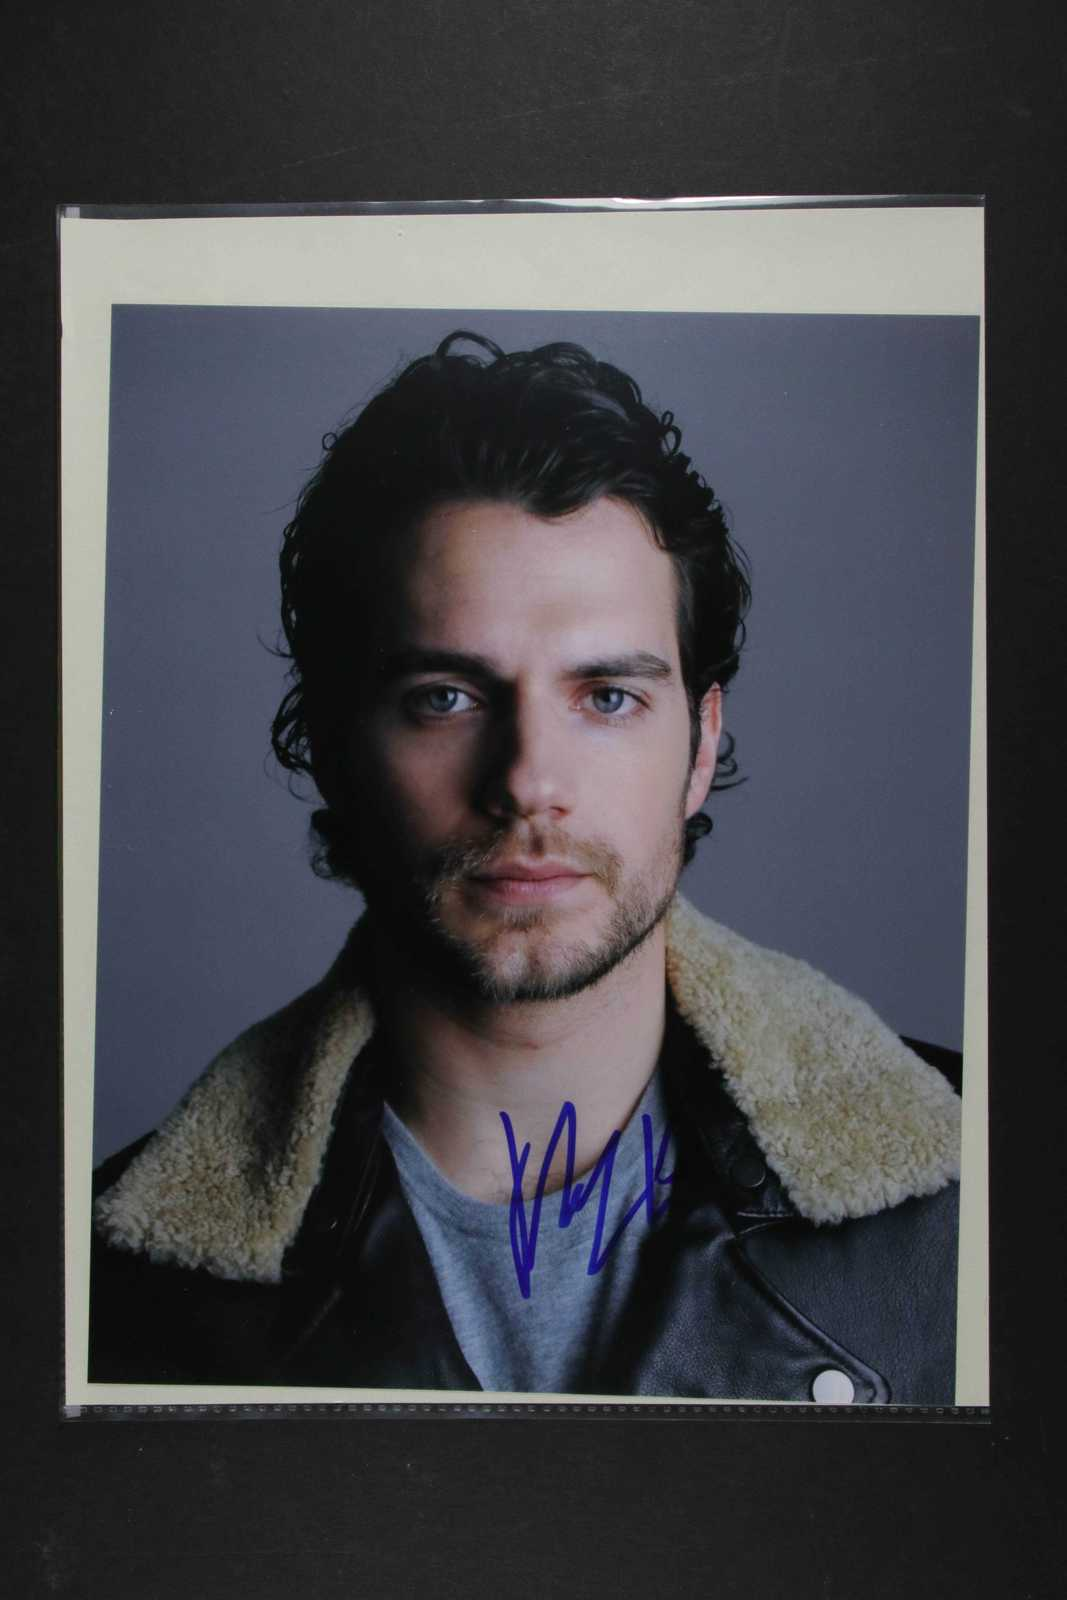 Primary image for Henry Cavill Signed Autographed Glossy 8x10 Photo